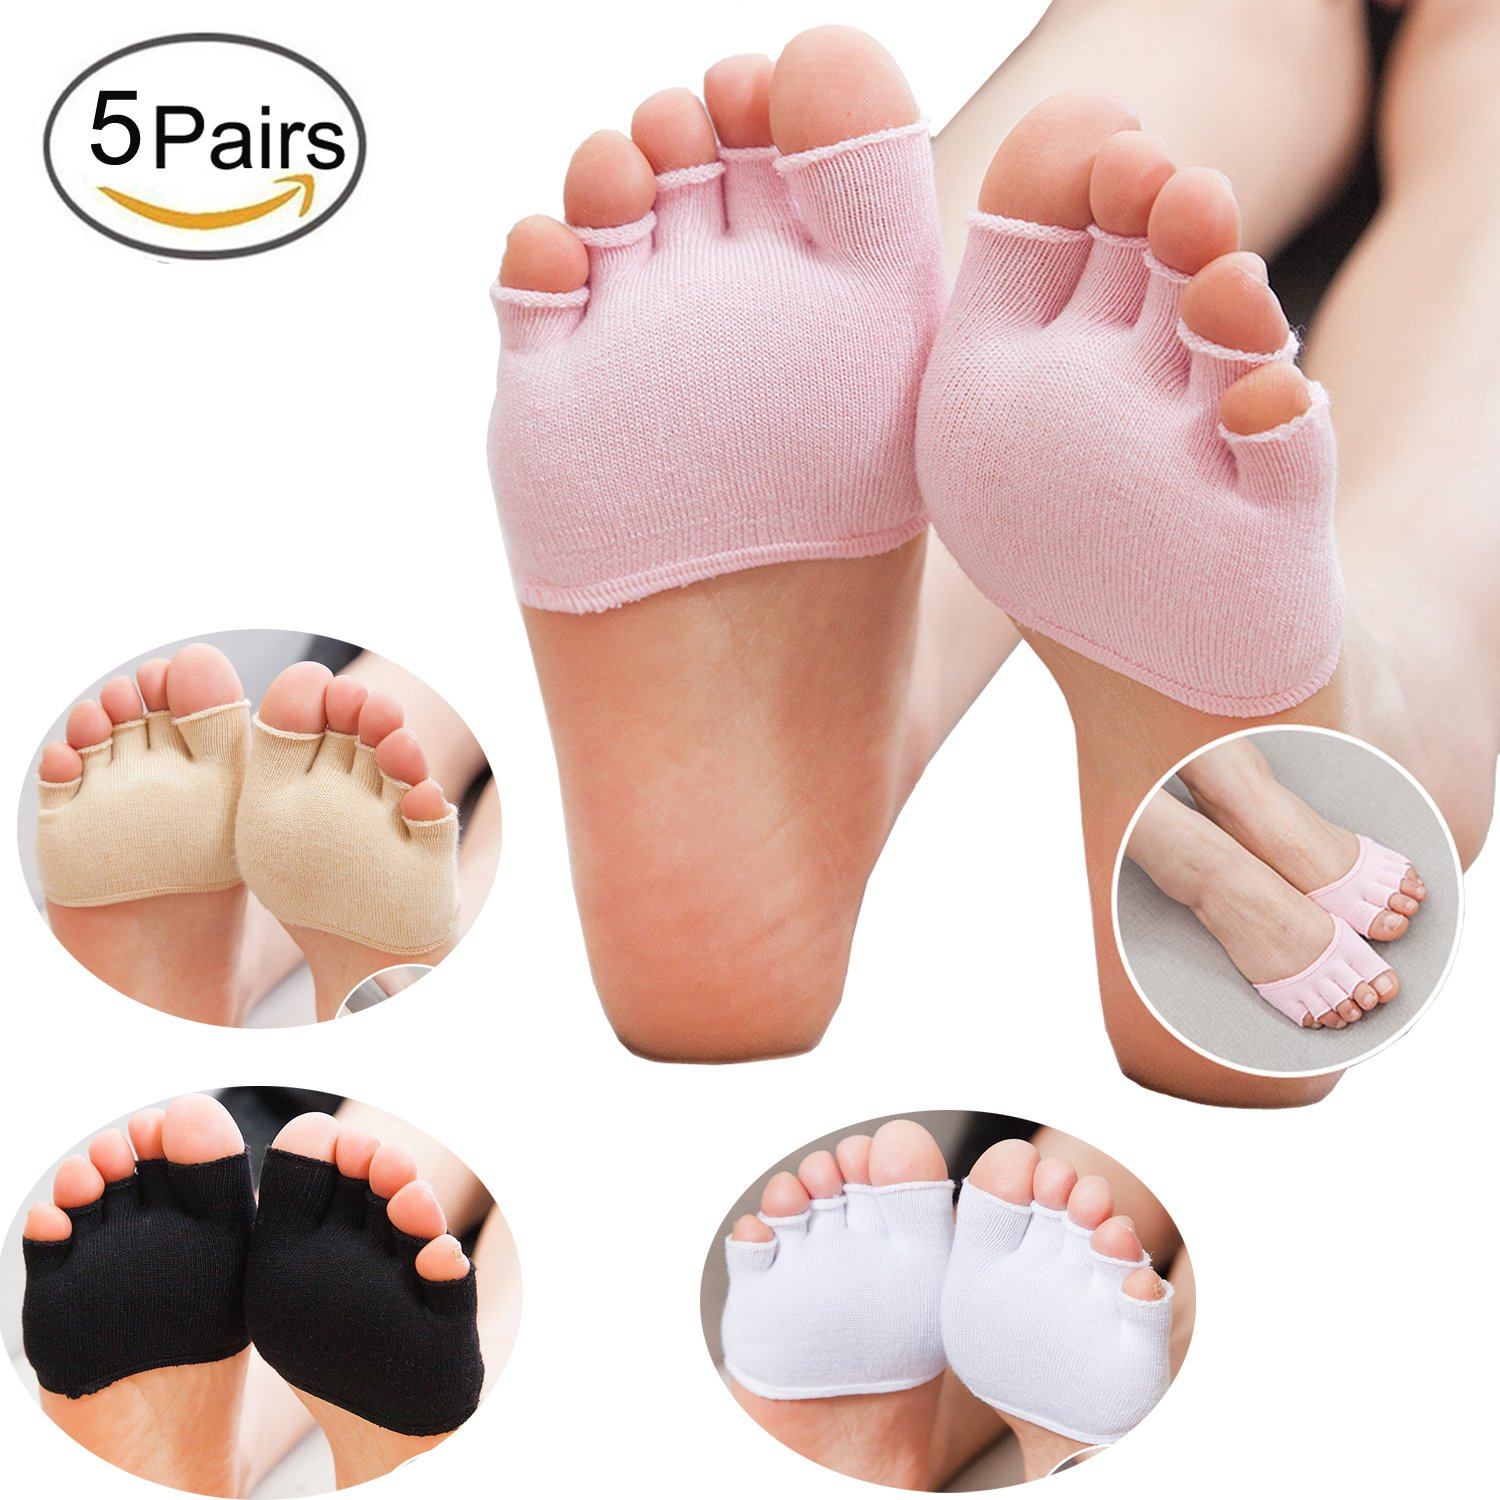 23a620f4c4 Five Toe Separate Design:Allows each toe to move freely, relieves  compression between the toes, and promotes blood circulation